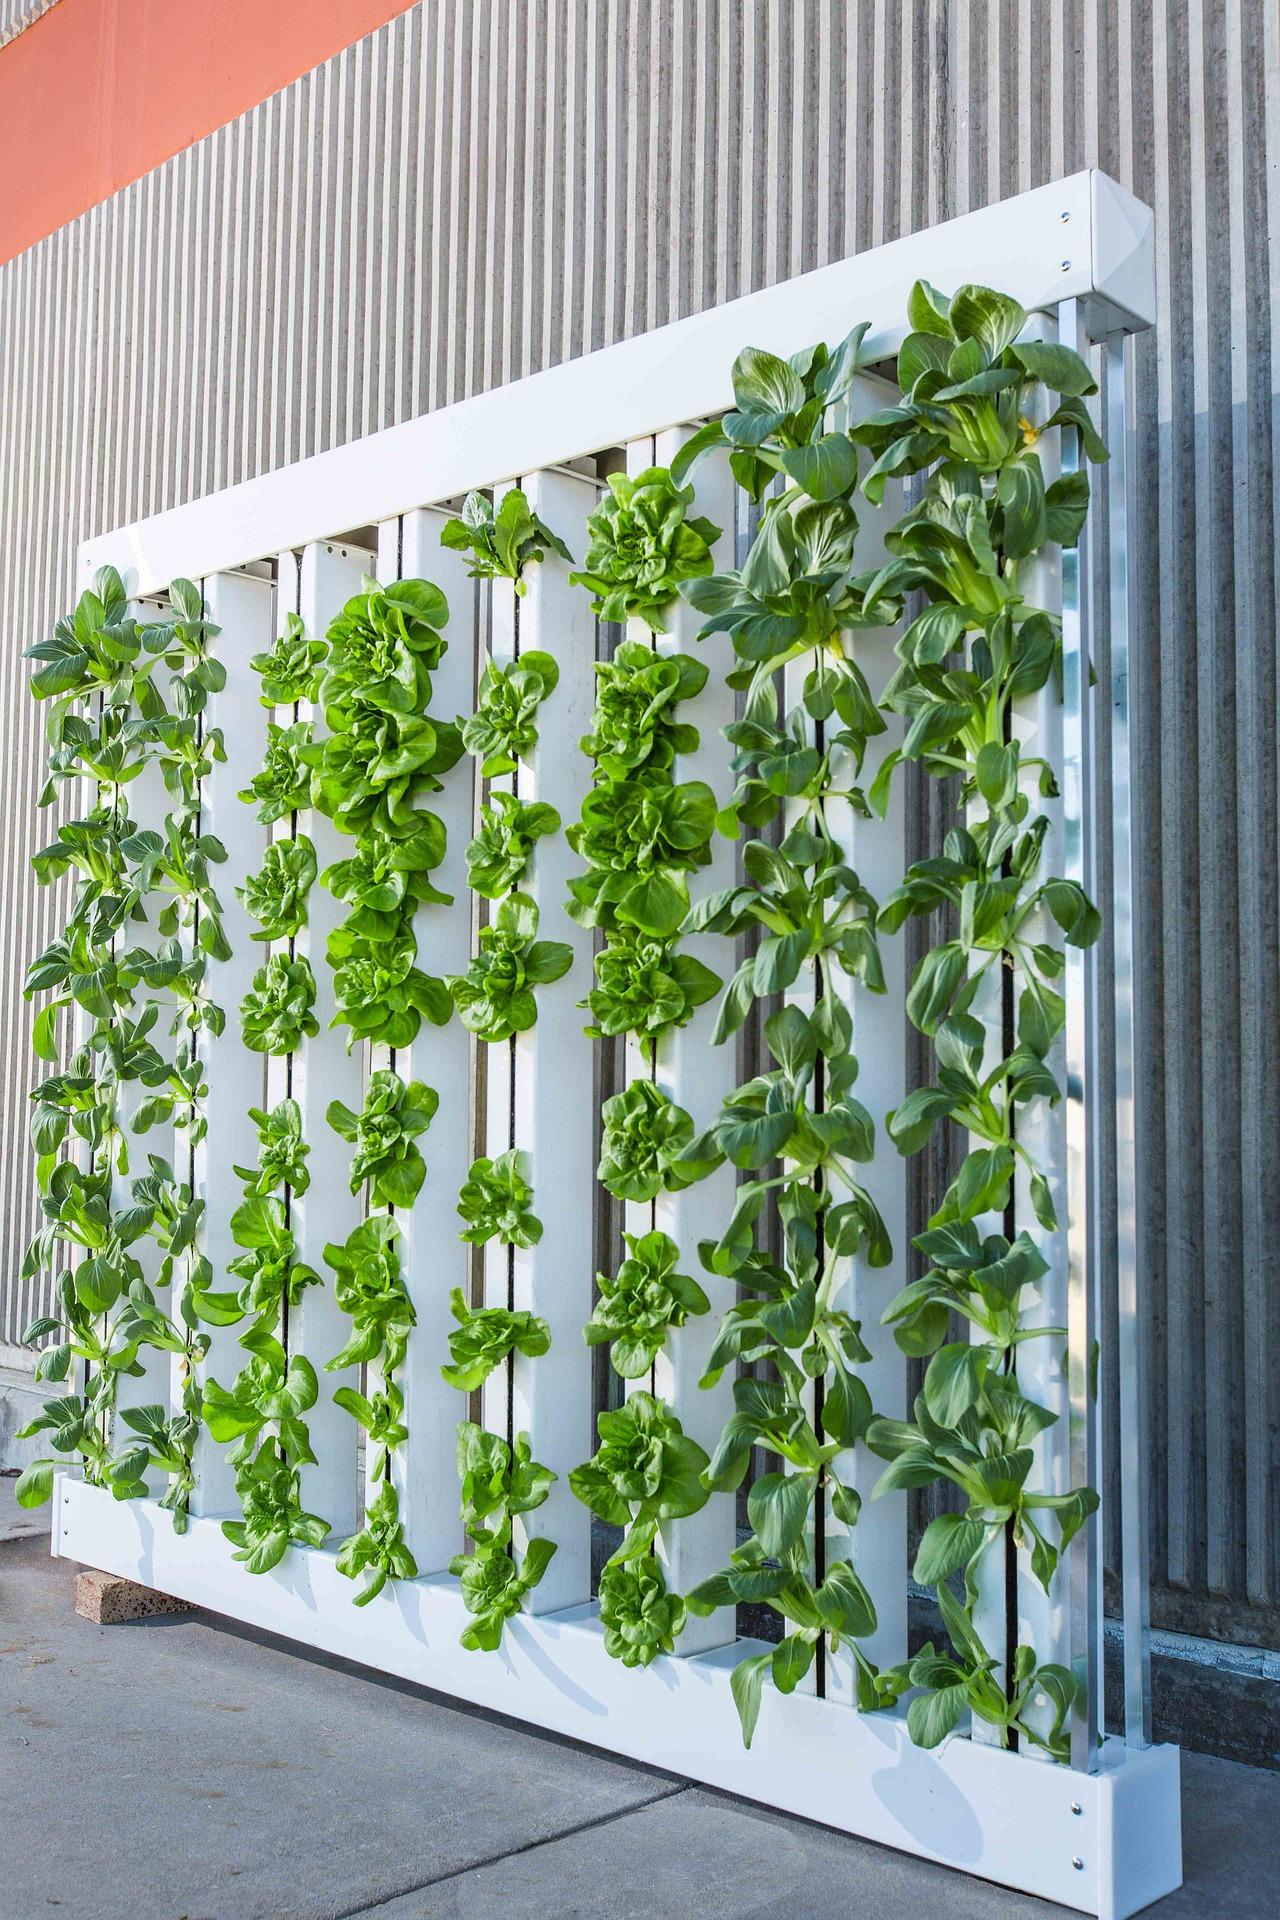 informal green wall indoors. Credit Bright Agrotech; Https://pixabay.com/en/vertical-farm-green-wall -bok-choy-916337/ Informal Green Wall Indoors L